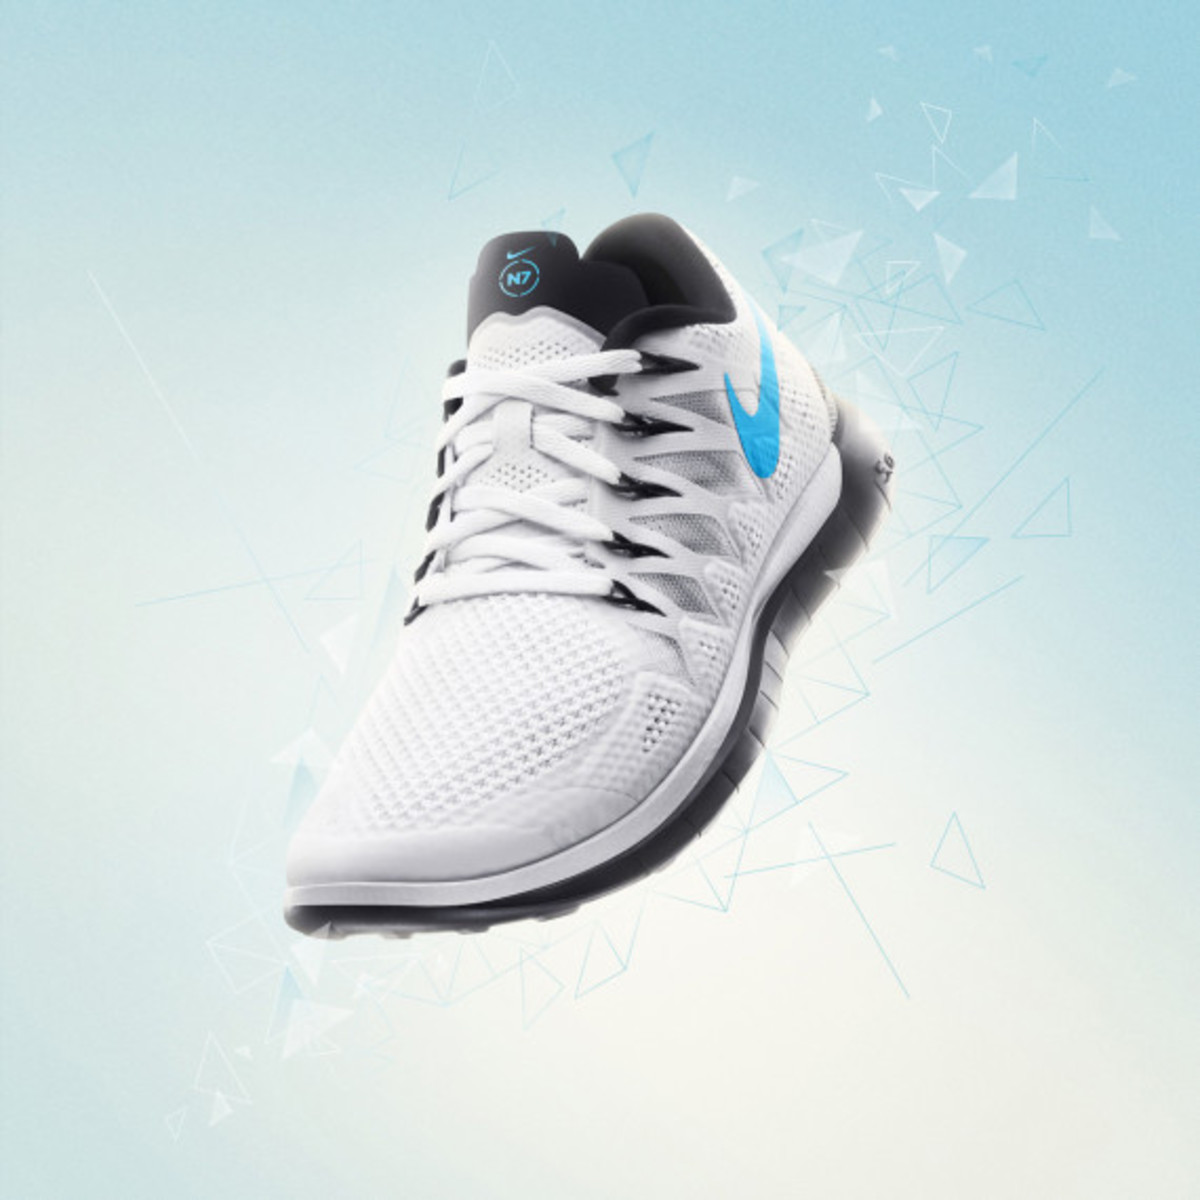 nike-n7-summer-2014-collection-21